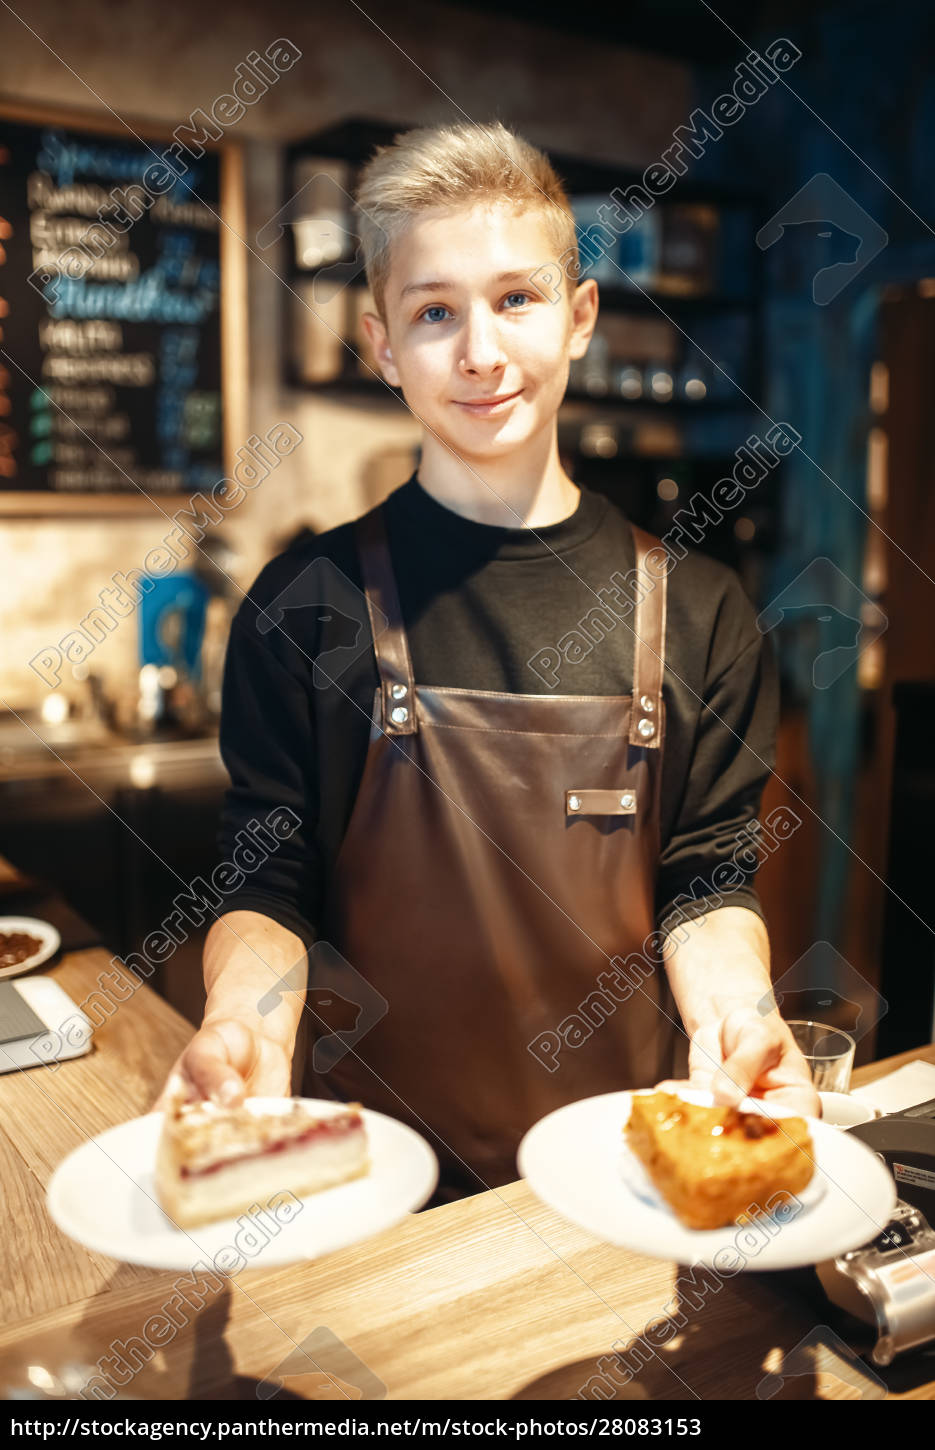 barista, holding, in, hands, plates, with - 28083153